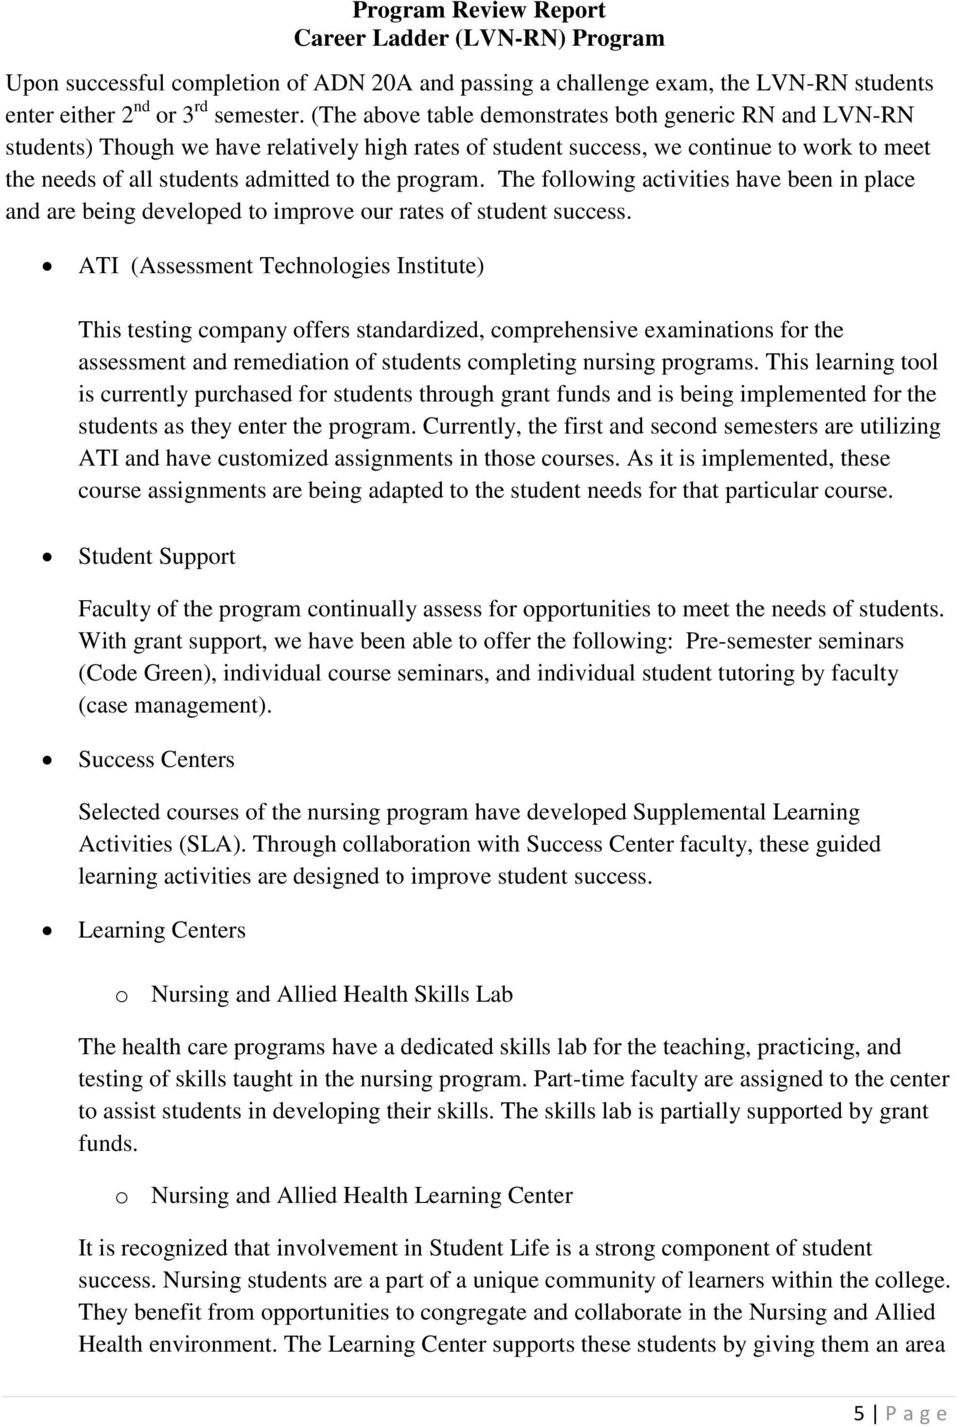 program. The following activities have been in place and are being developed to improve our rates of student success.